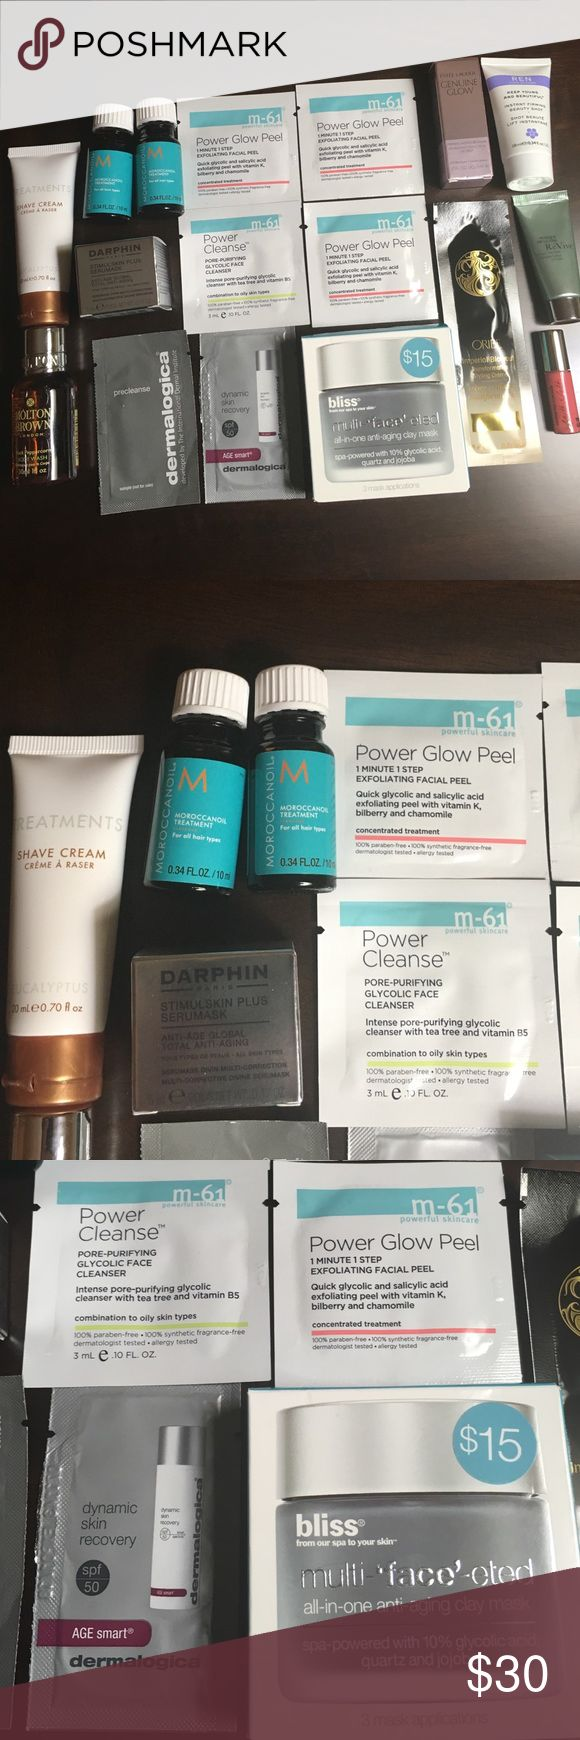 High End Treatments from Bluemercury *NEW UNUSED* Products are all NEW and UNUSED and from Bluemercury.  **All items are FRESH from July - Nov 2016!!!! Includes: Treatments Shave Cream, Moroccanoil (quantity 2), m-61 Power Glow Peel (quantity 3), m-61 Power Cleanse, Darphin Stimulskin Plus Serumask, Este Lauder Genuine Glow Priming Moisture Balm, REN, ReVive Clay Mask, Oribe Imperial Blowout, Bliss multi-face-eted clay mask, Smith & Cult (the lovers), Dermalogica precleanse and dynamic skin…